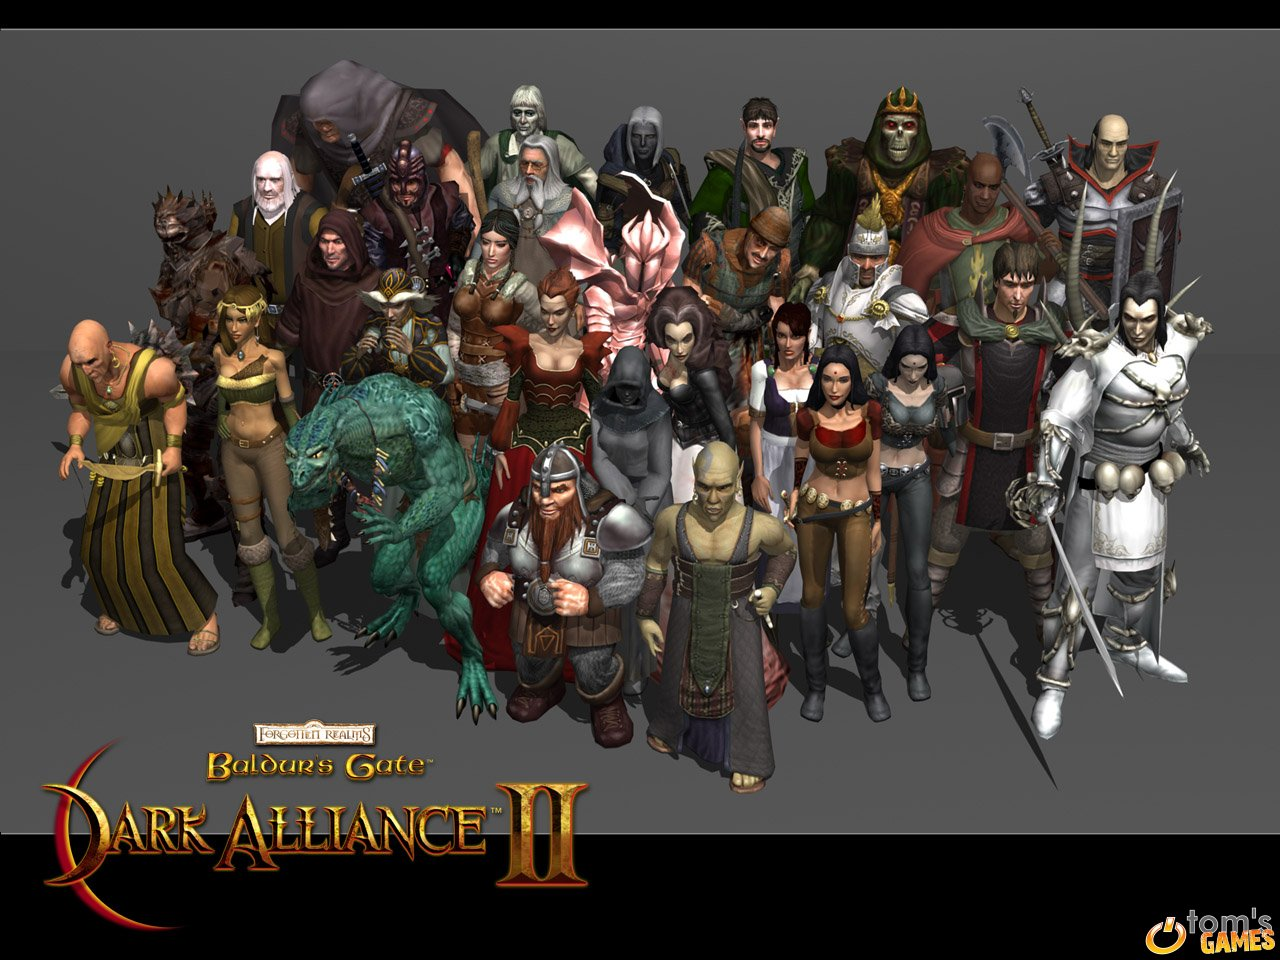 drow lich lizardman red dragon Quadretto d'insieme per il wallpaper di DA2: drow, lich, lucertoloide, vampiro, drago rosso (quella col vestito sgargiante)... Videogame: Baldur's Gate, Dark Alliance II (2004-01) © Vivendi, Wizards of the Coast & Hasbro